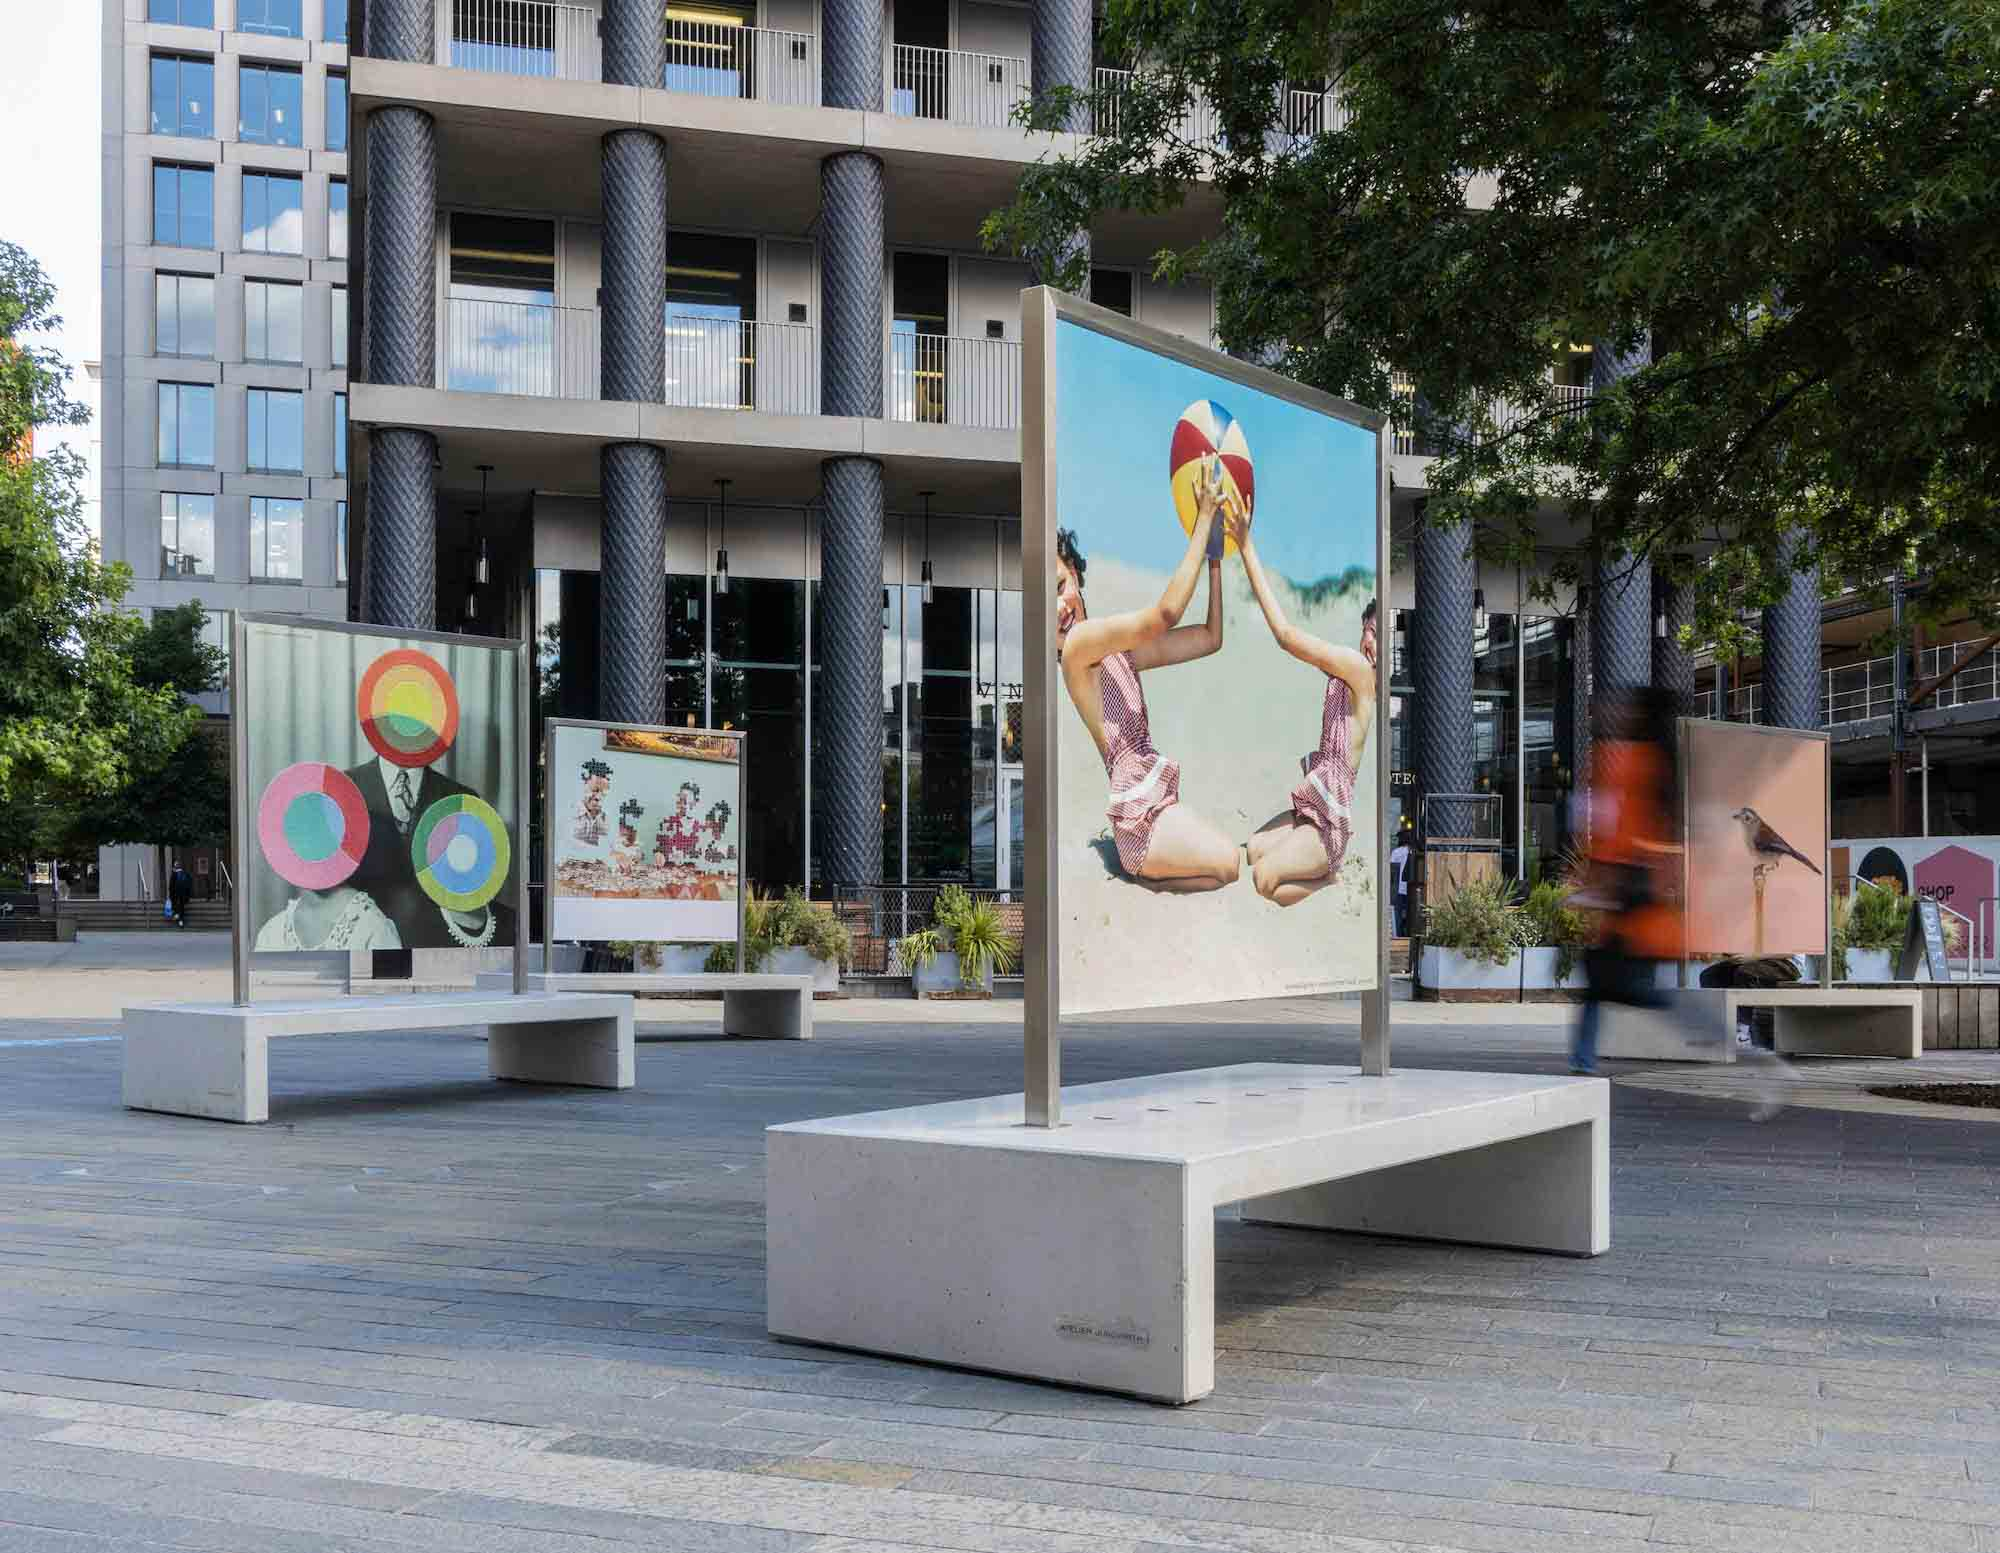 An installation in King's Cross, London, UK., of specially-made benches with canvas overhead, displaying images from The Photographer's Gallery